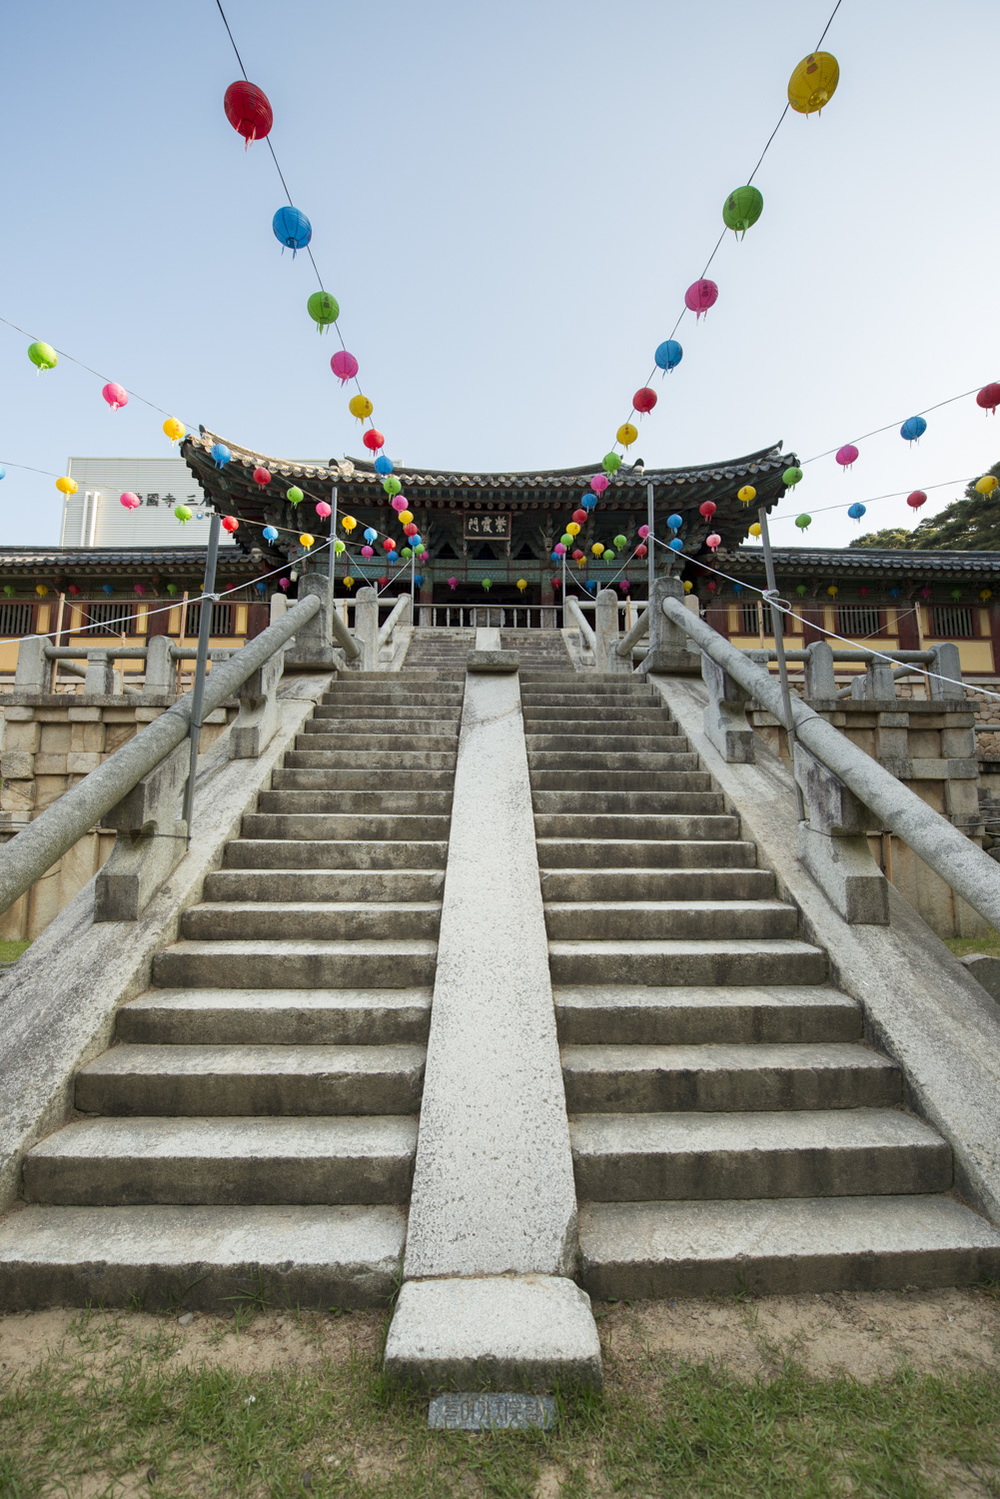 The stairs at Bulguksa Temple are one of its more famous features. There are 33 steps which represents the 33 steps to enlightenment. Unfortunately, though you can't tell from this photo, they were roped off so I could not climb them. #funkiller